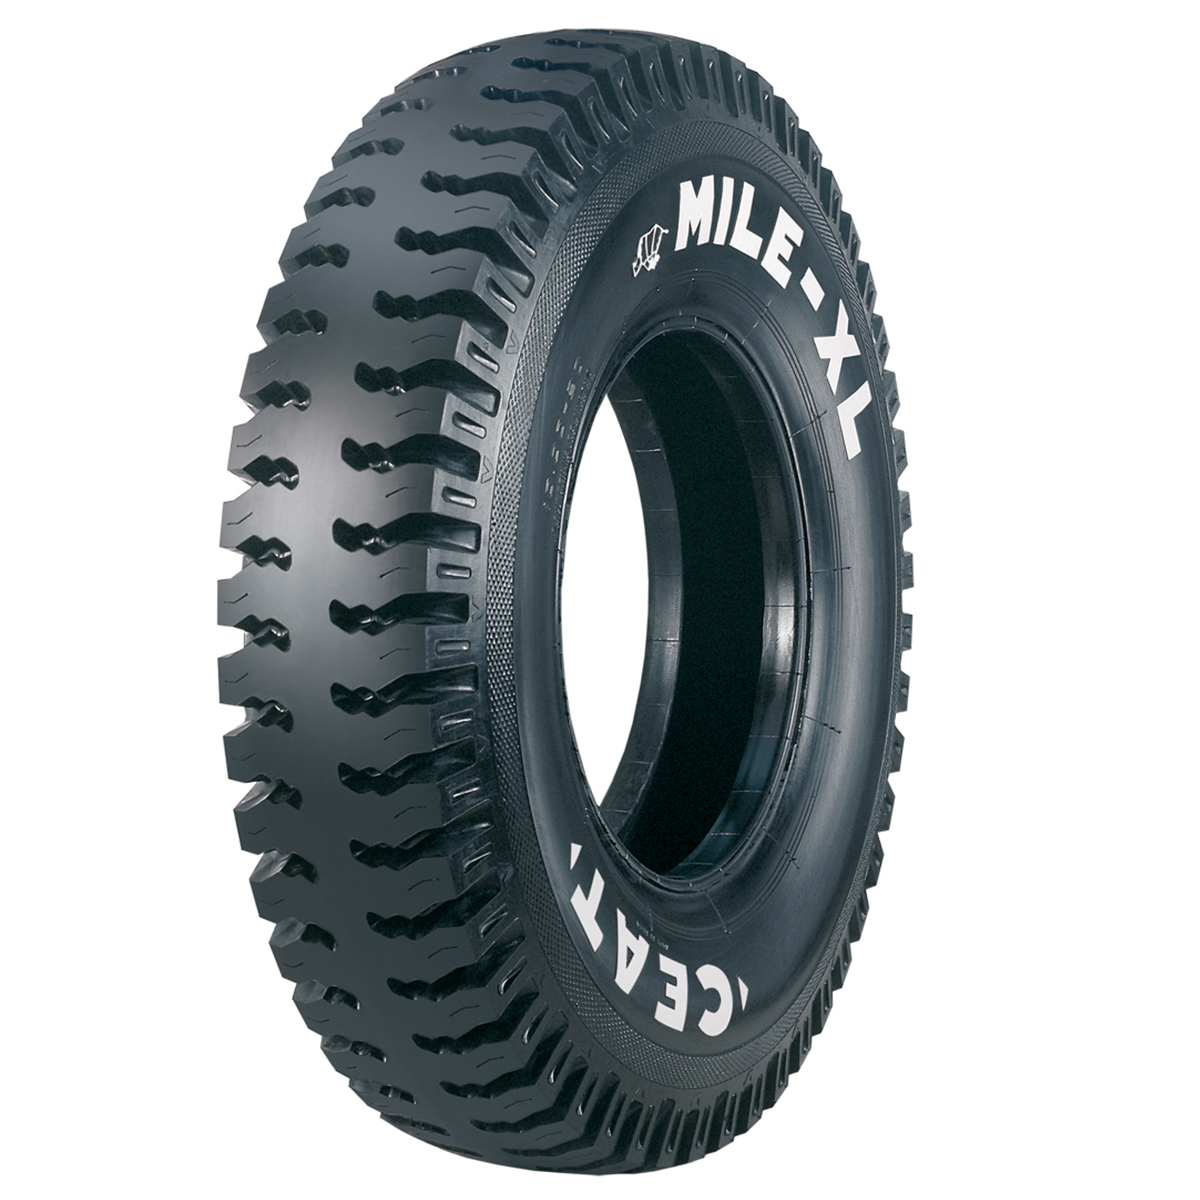 CEAT MILE XL RIB 185/ D 14 Requires Tube 88 J Car Tyre